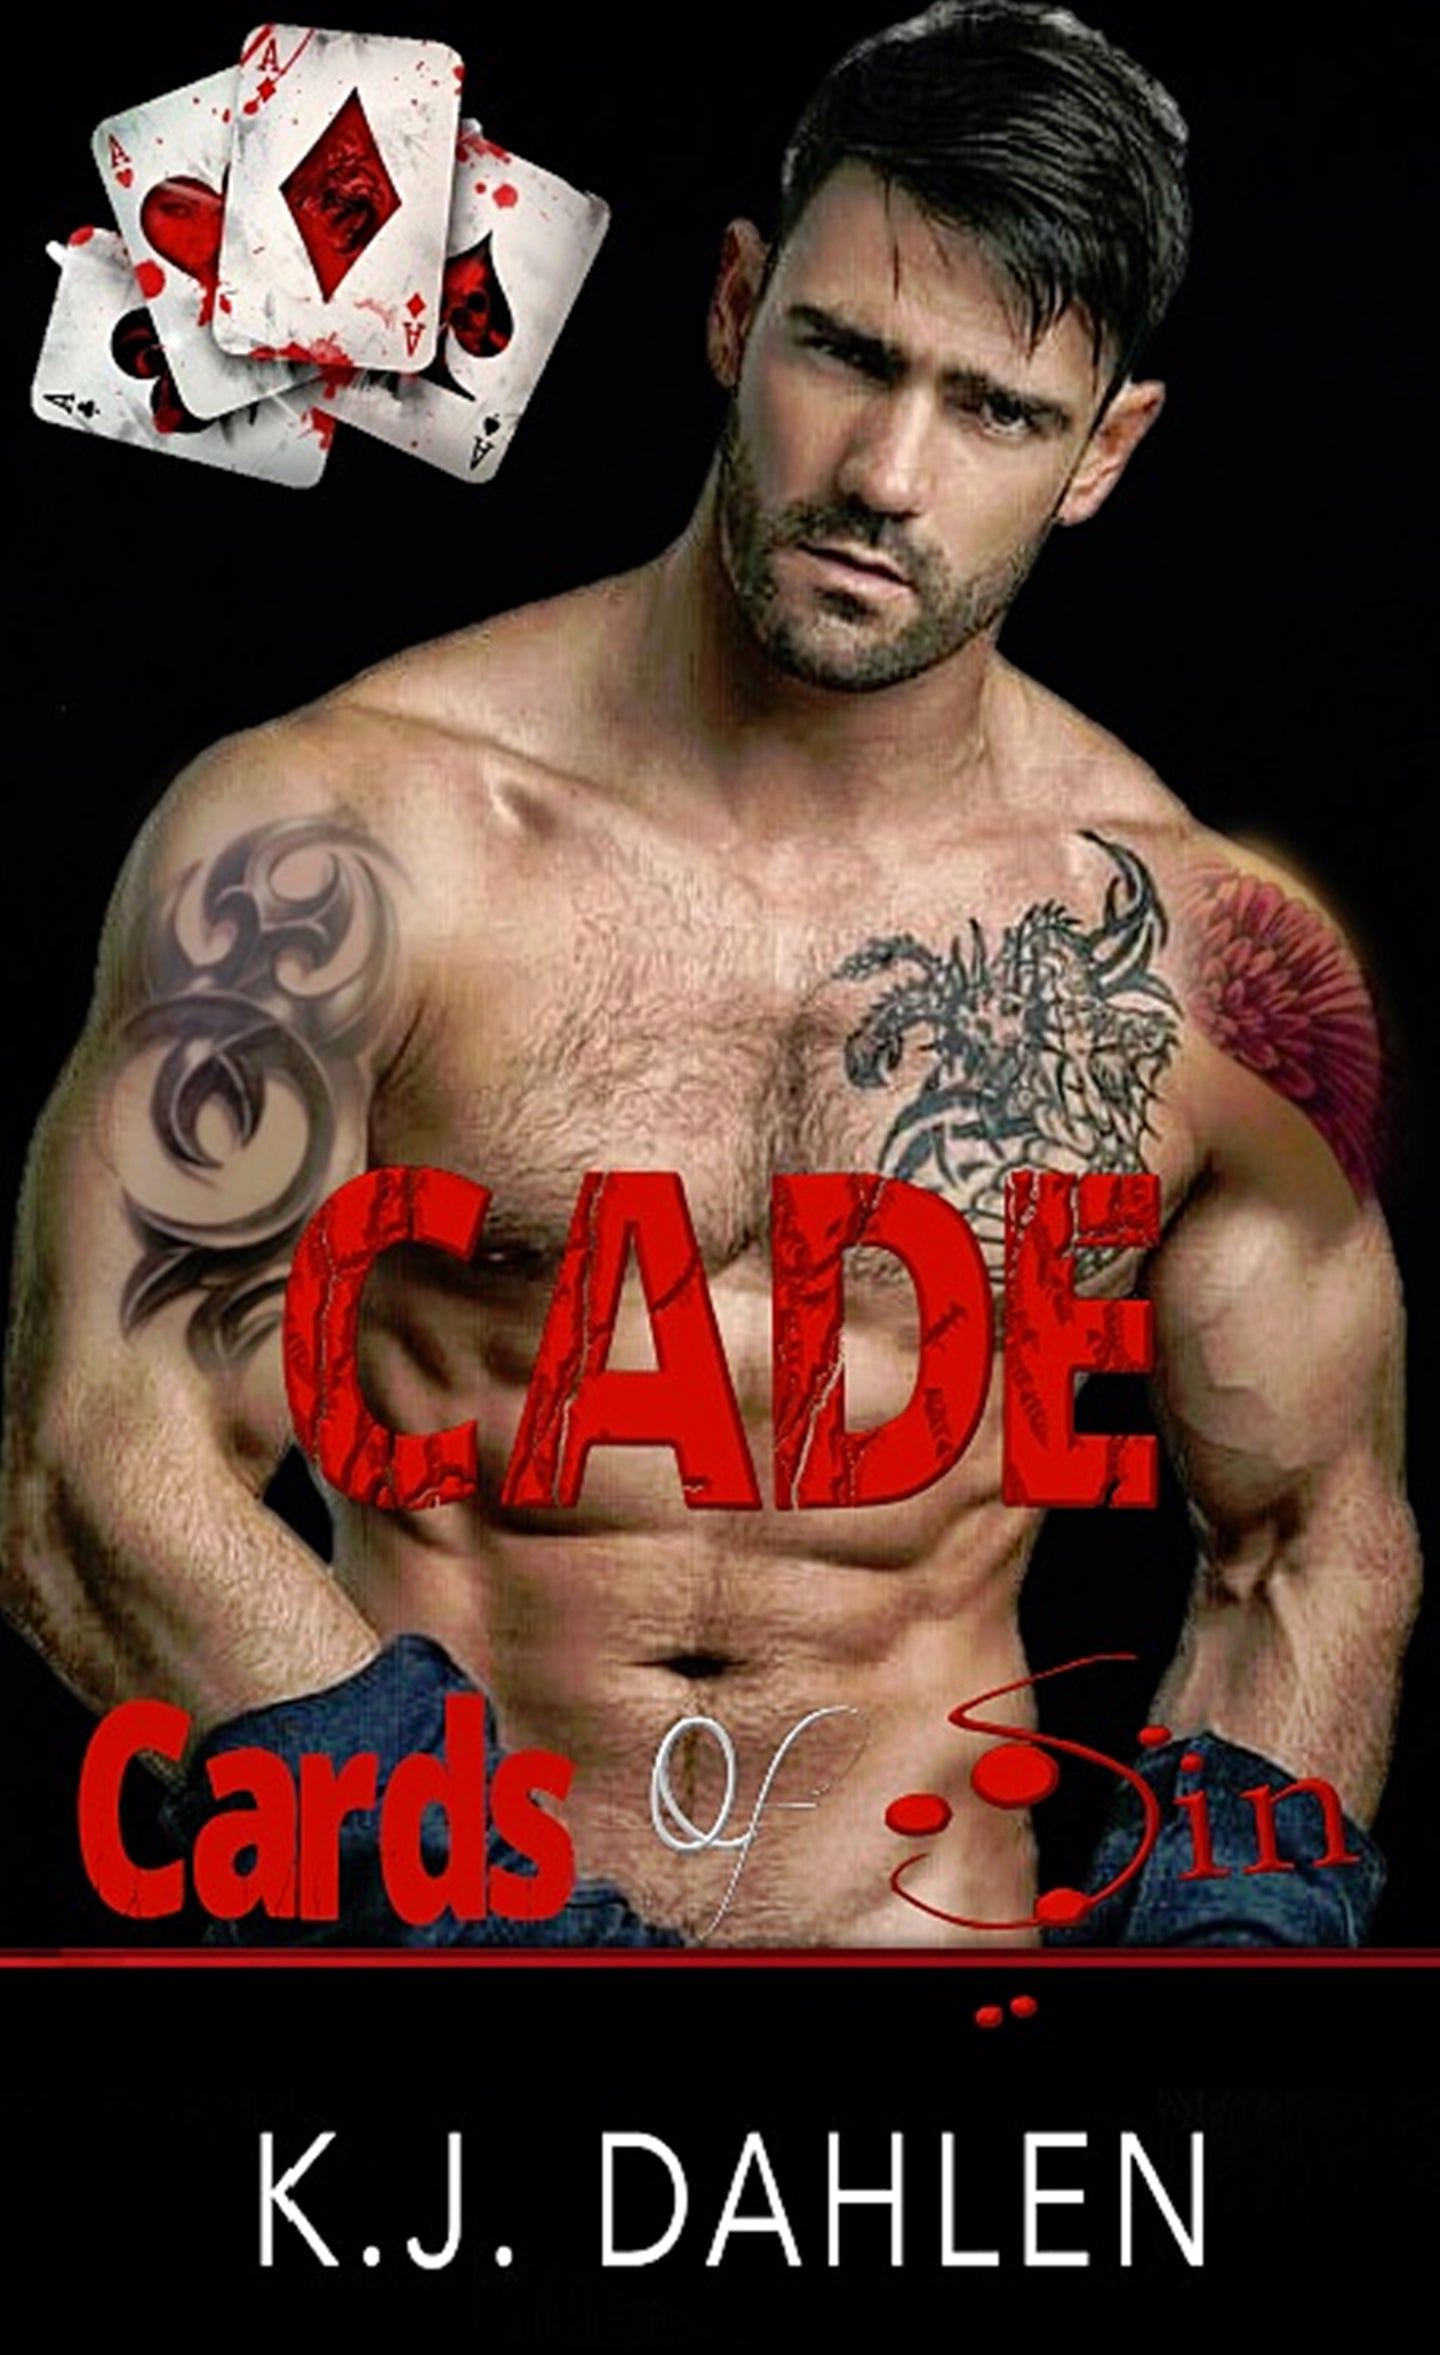 Cade-Cards Of Sin-single